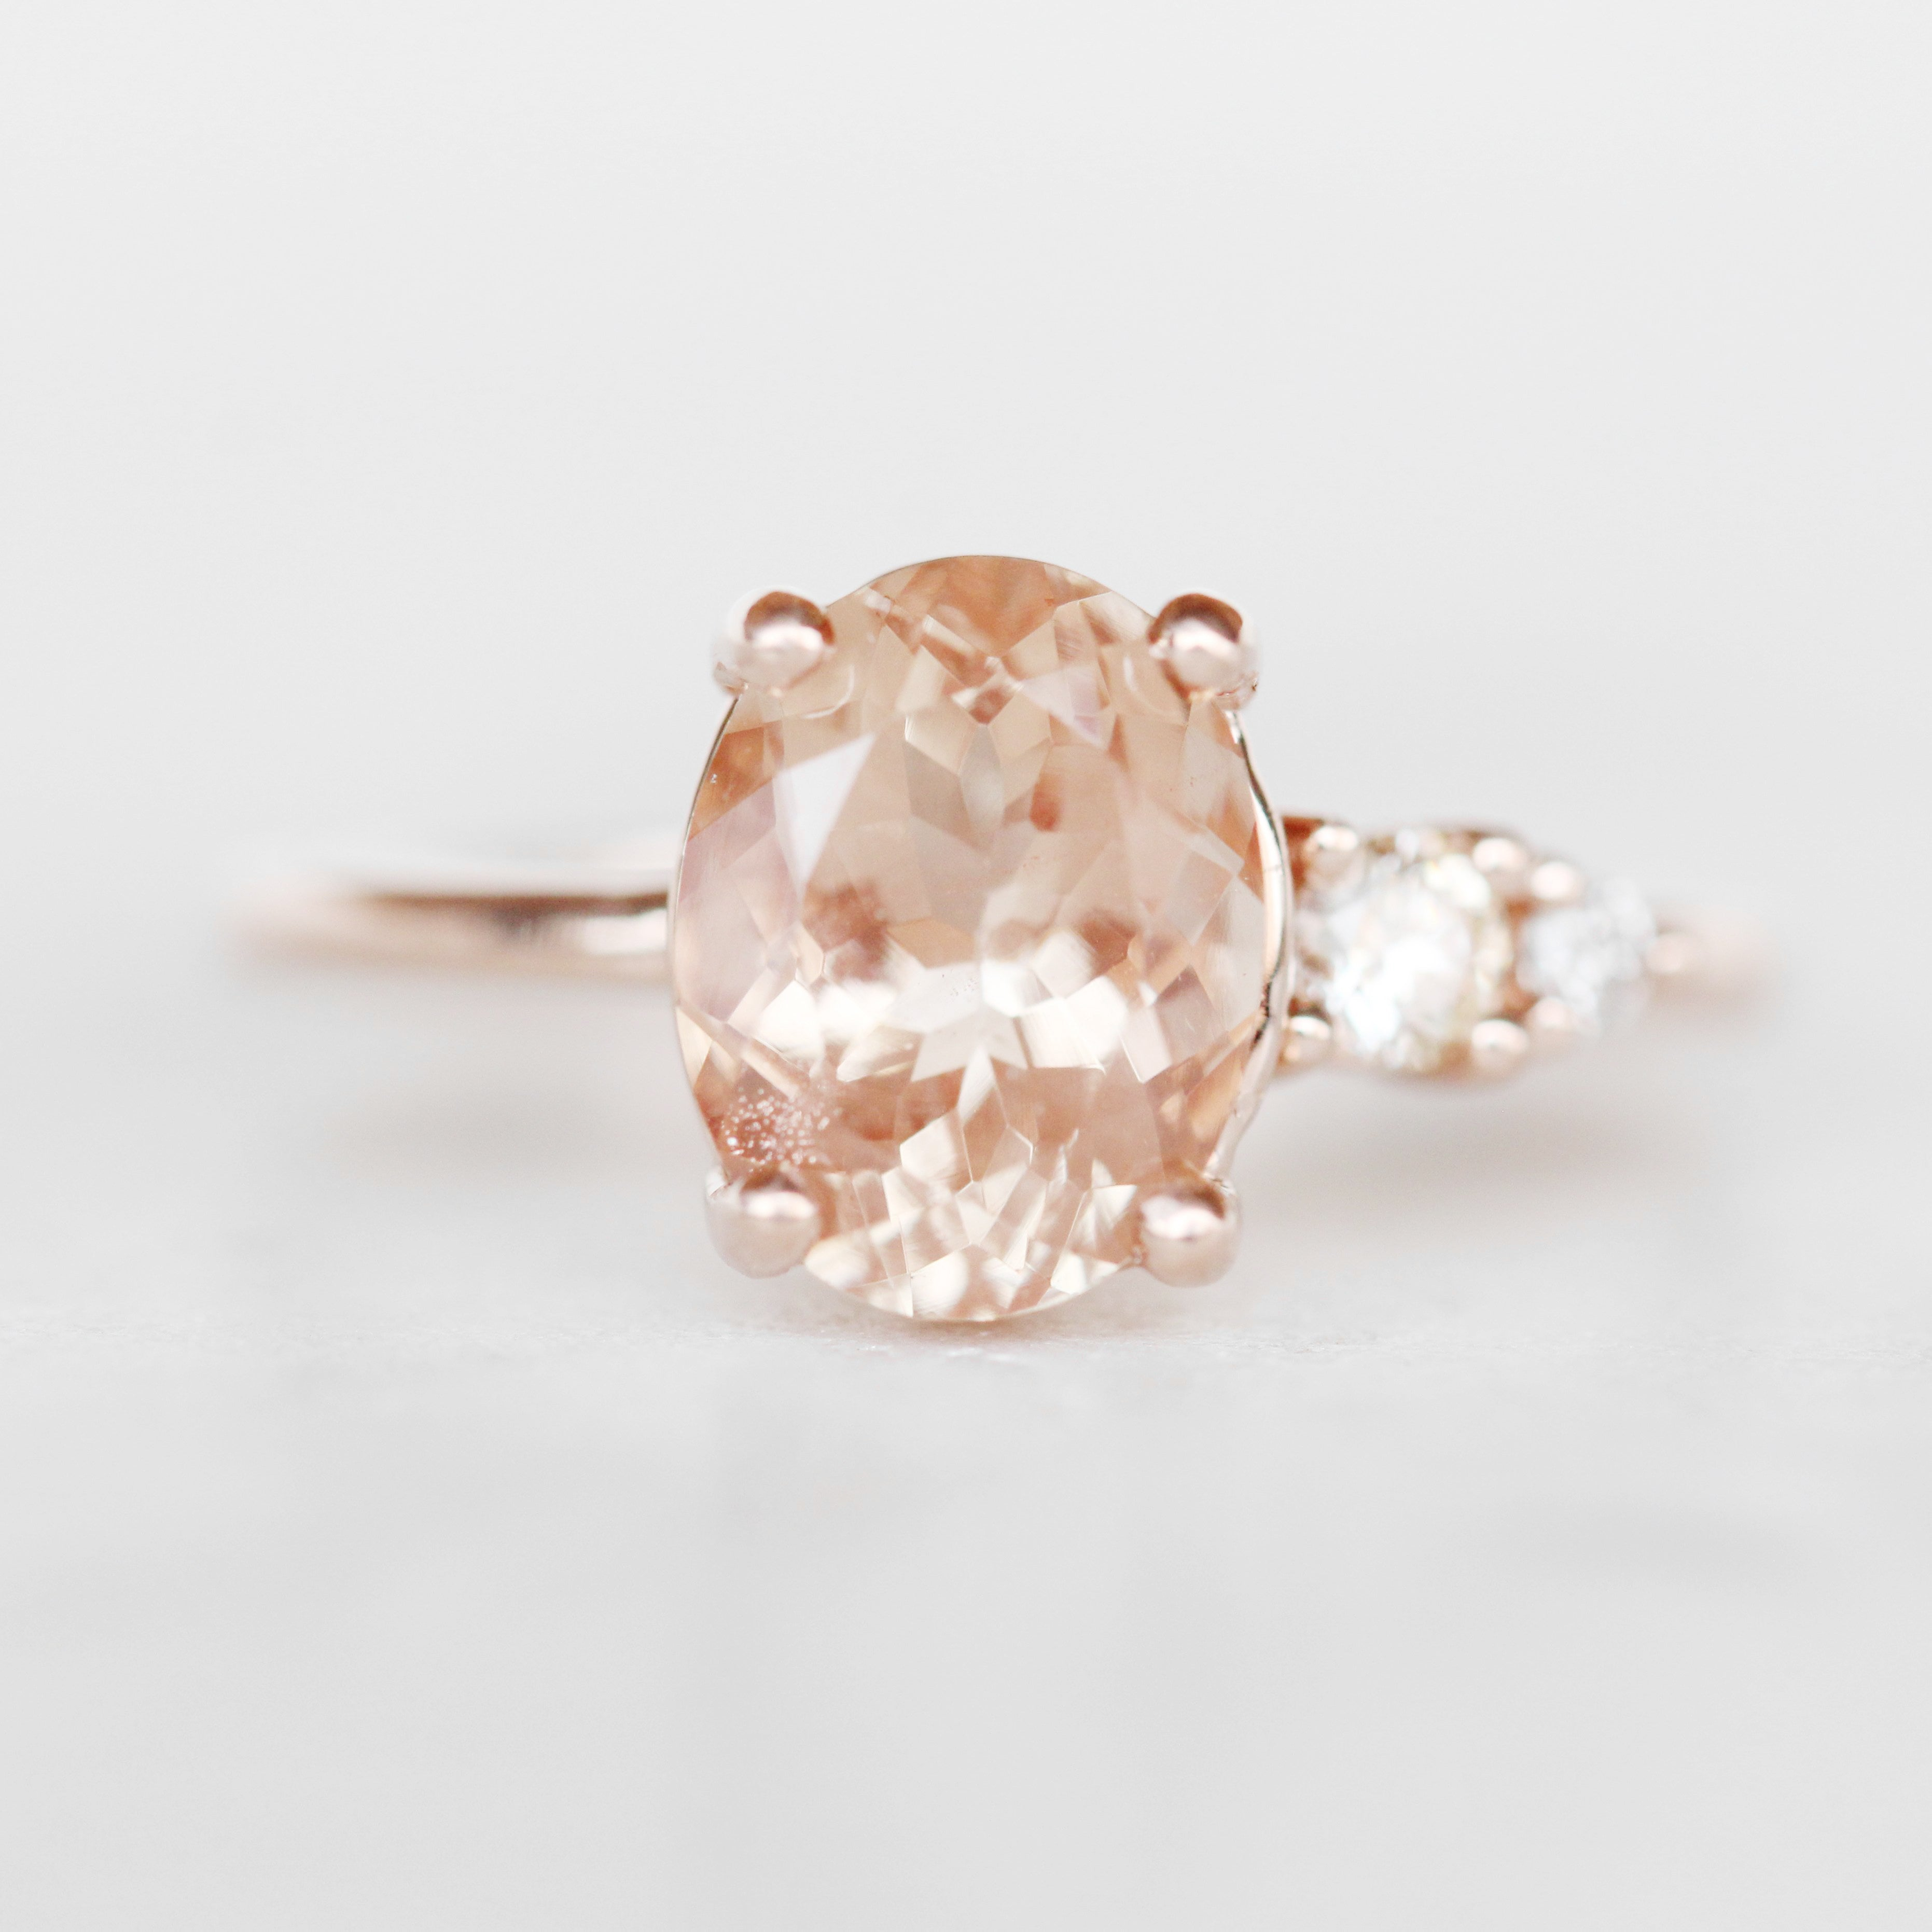 Jesse Ring with a 1.66 Carat Oval Sunstone and Two Graduated Clear Accents in 10k Rose Gold - Ready to Size and Ship - Salt & Pepper Celestial Diamond Engagement Rings and Wedding Bands  by Midwinter Co.